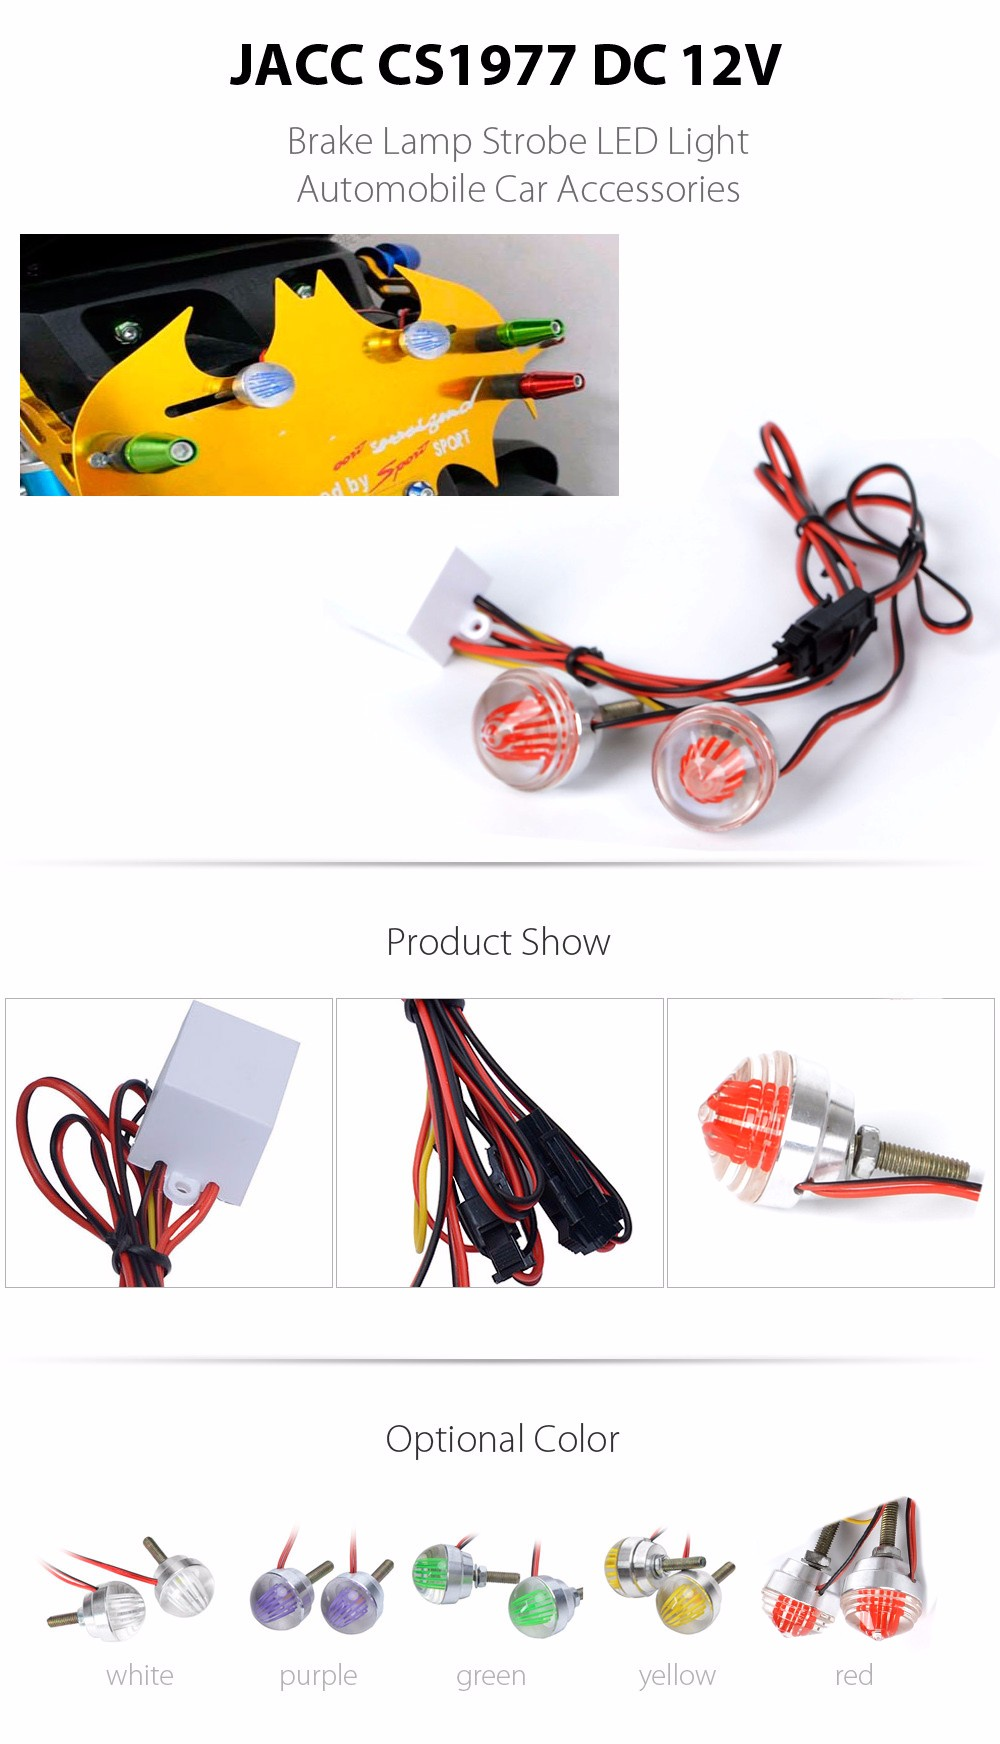 JACC CS1977 DC 12V LED Strobe Lamp Automobile Car Accessories